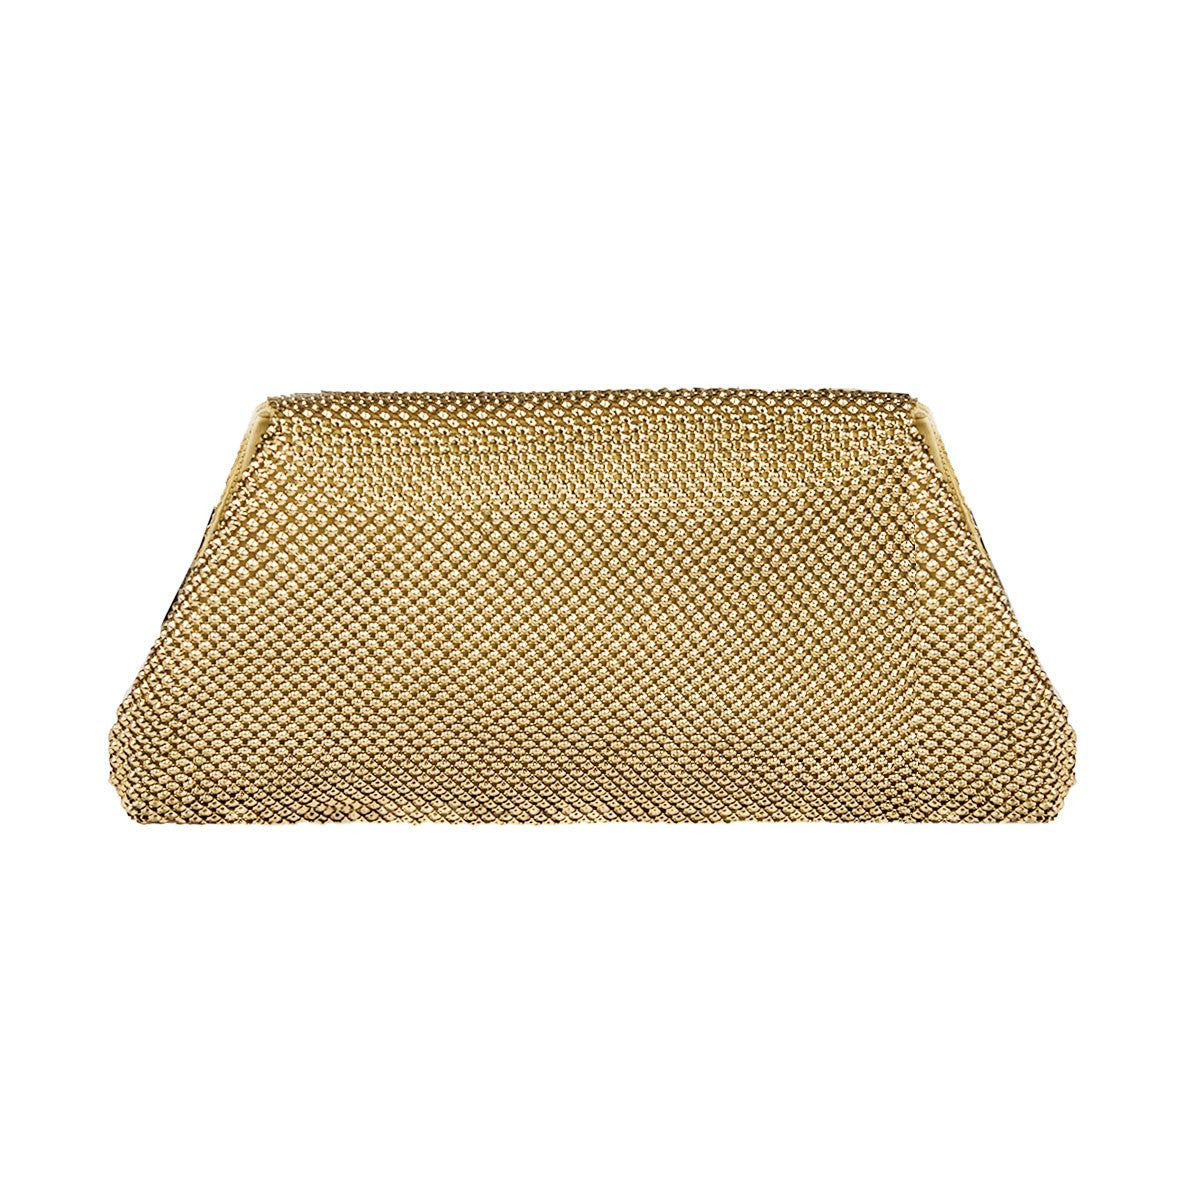 Whiting & Davis Rhinestone & Gold  Metal Mesh Clutch 2